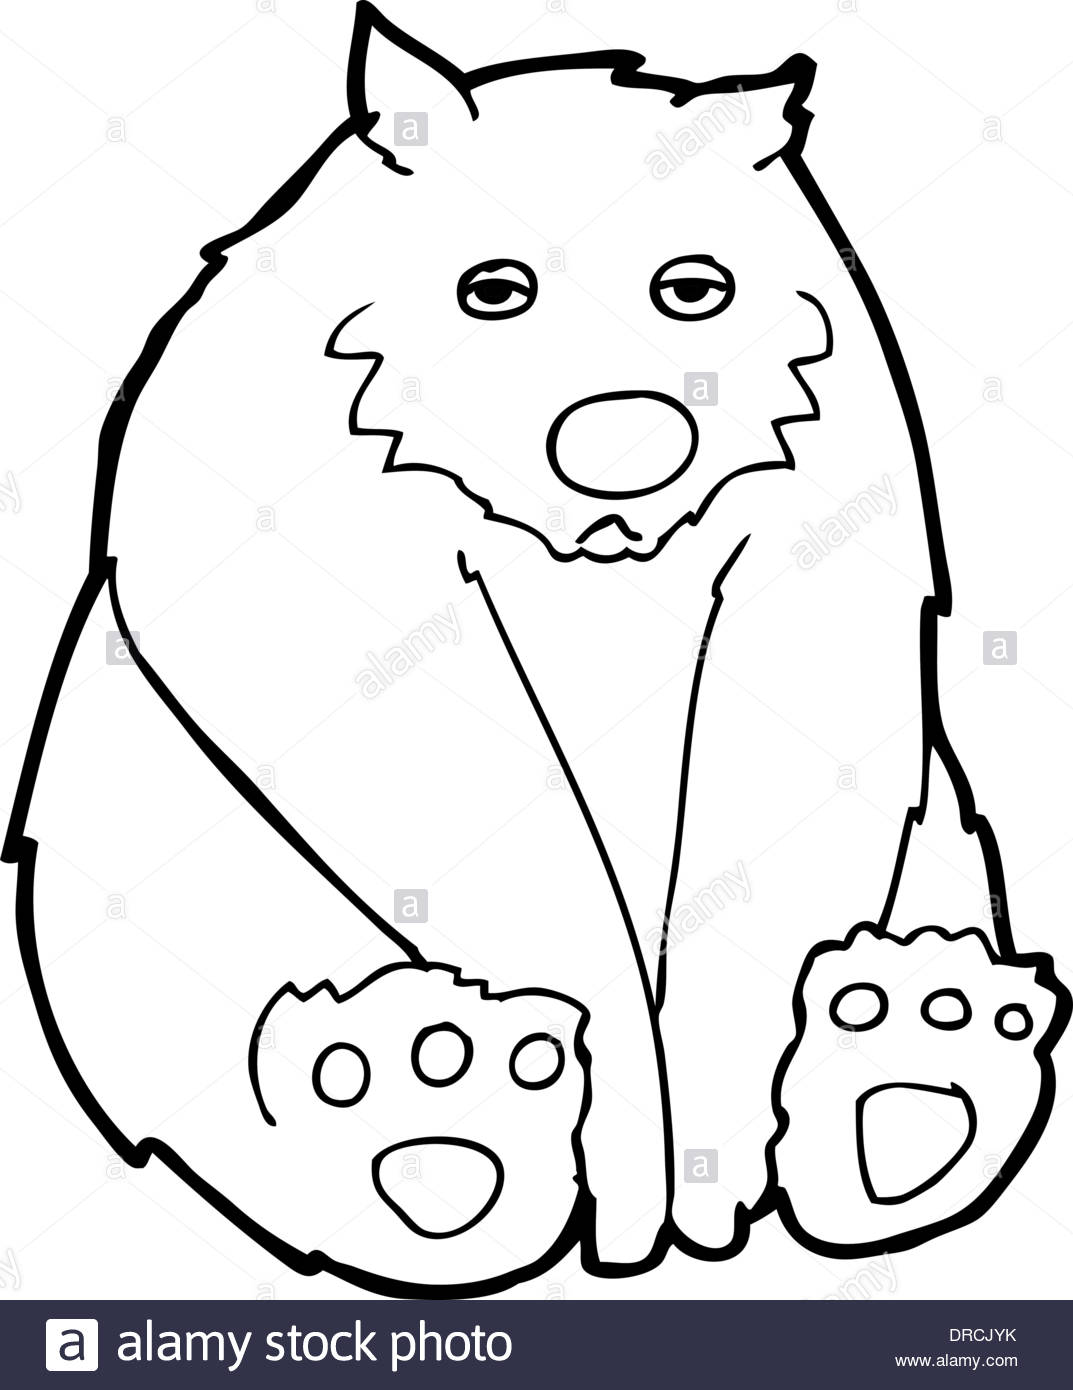 1073x1390 Cartoon Sad Bear Stock Vector Art Amp Illustration, Vector Image